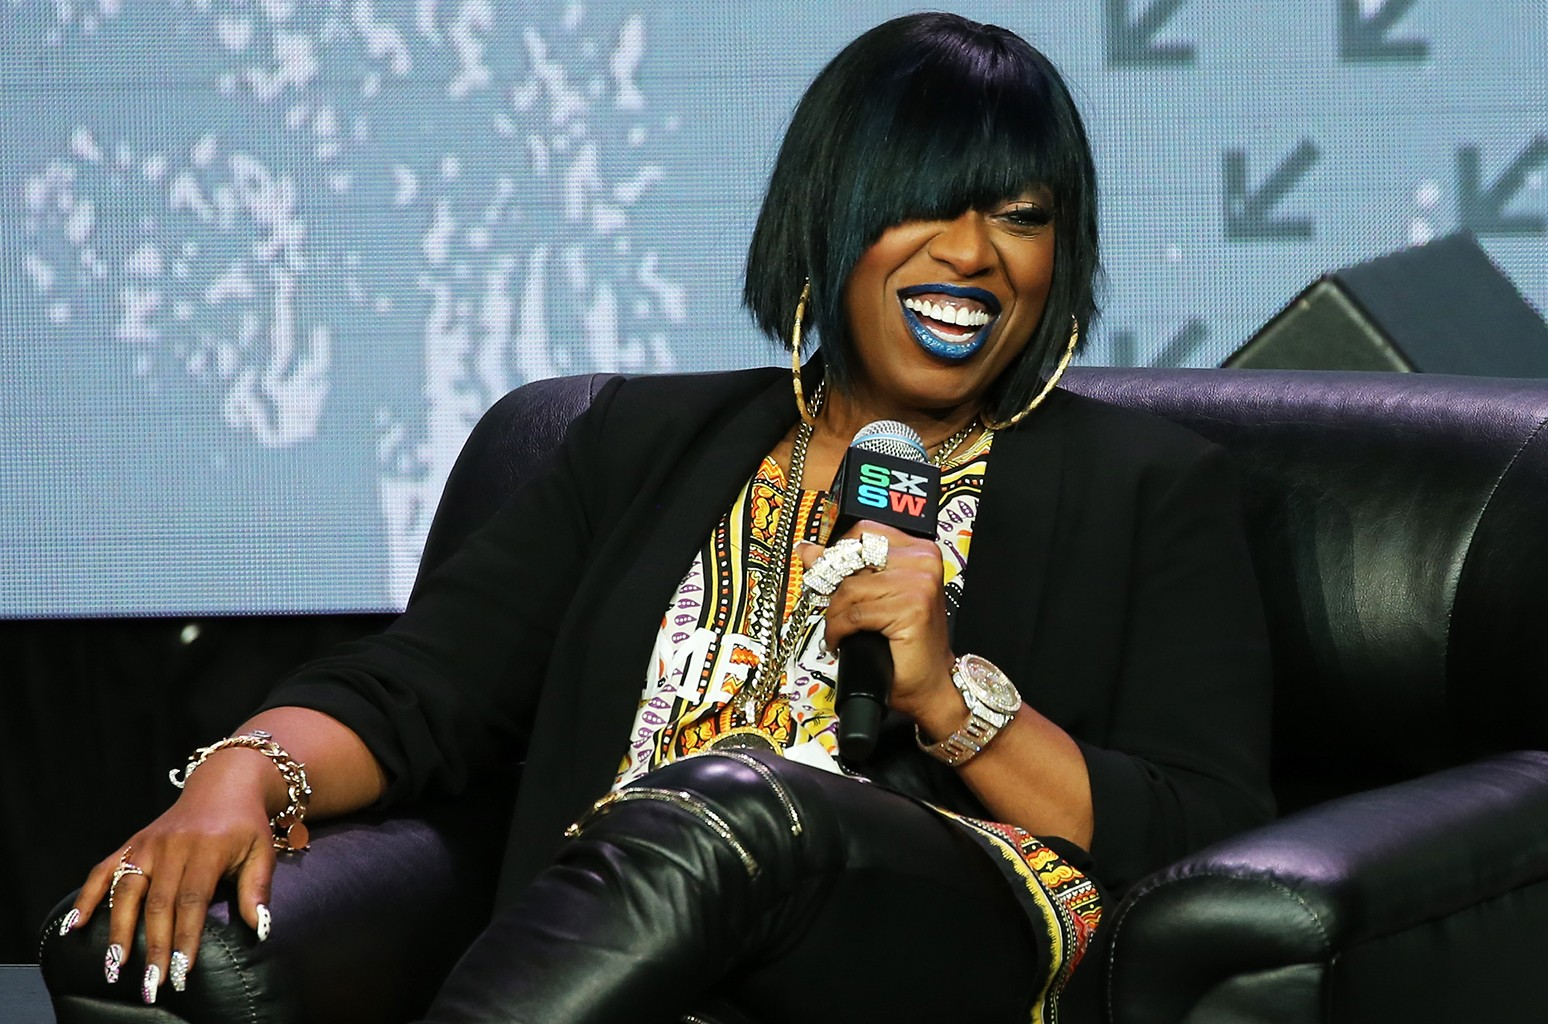 Missy Elliott speaks on stage during the SXSW Keynote